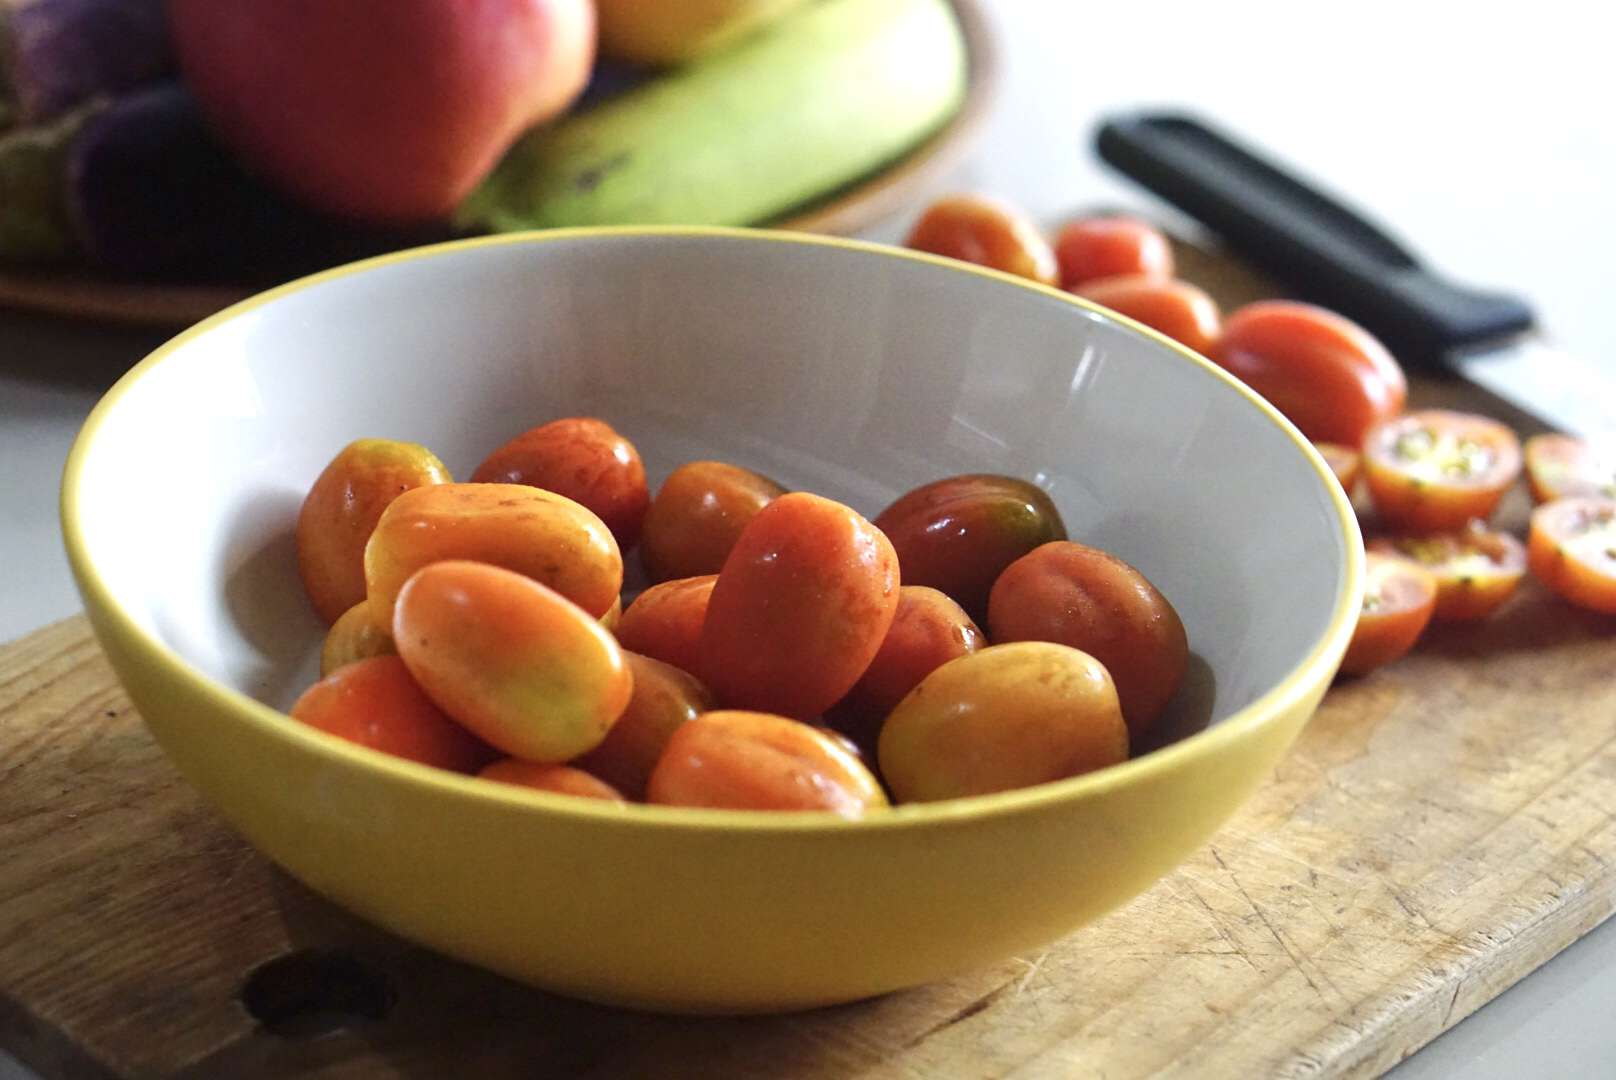 Red and orange cherry tomatoes in a yellow bowl on wood cutting board